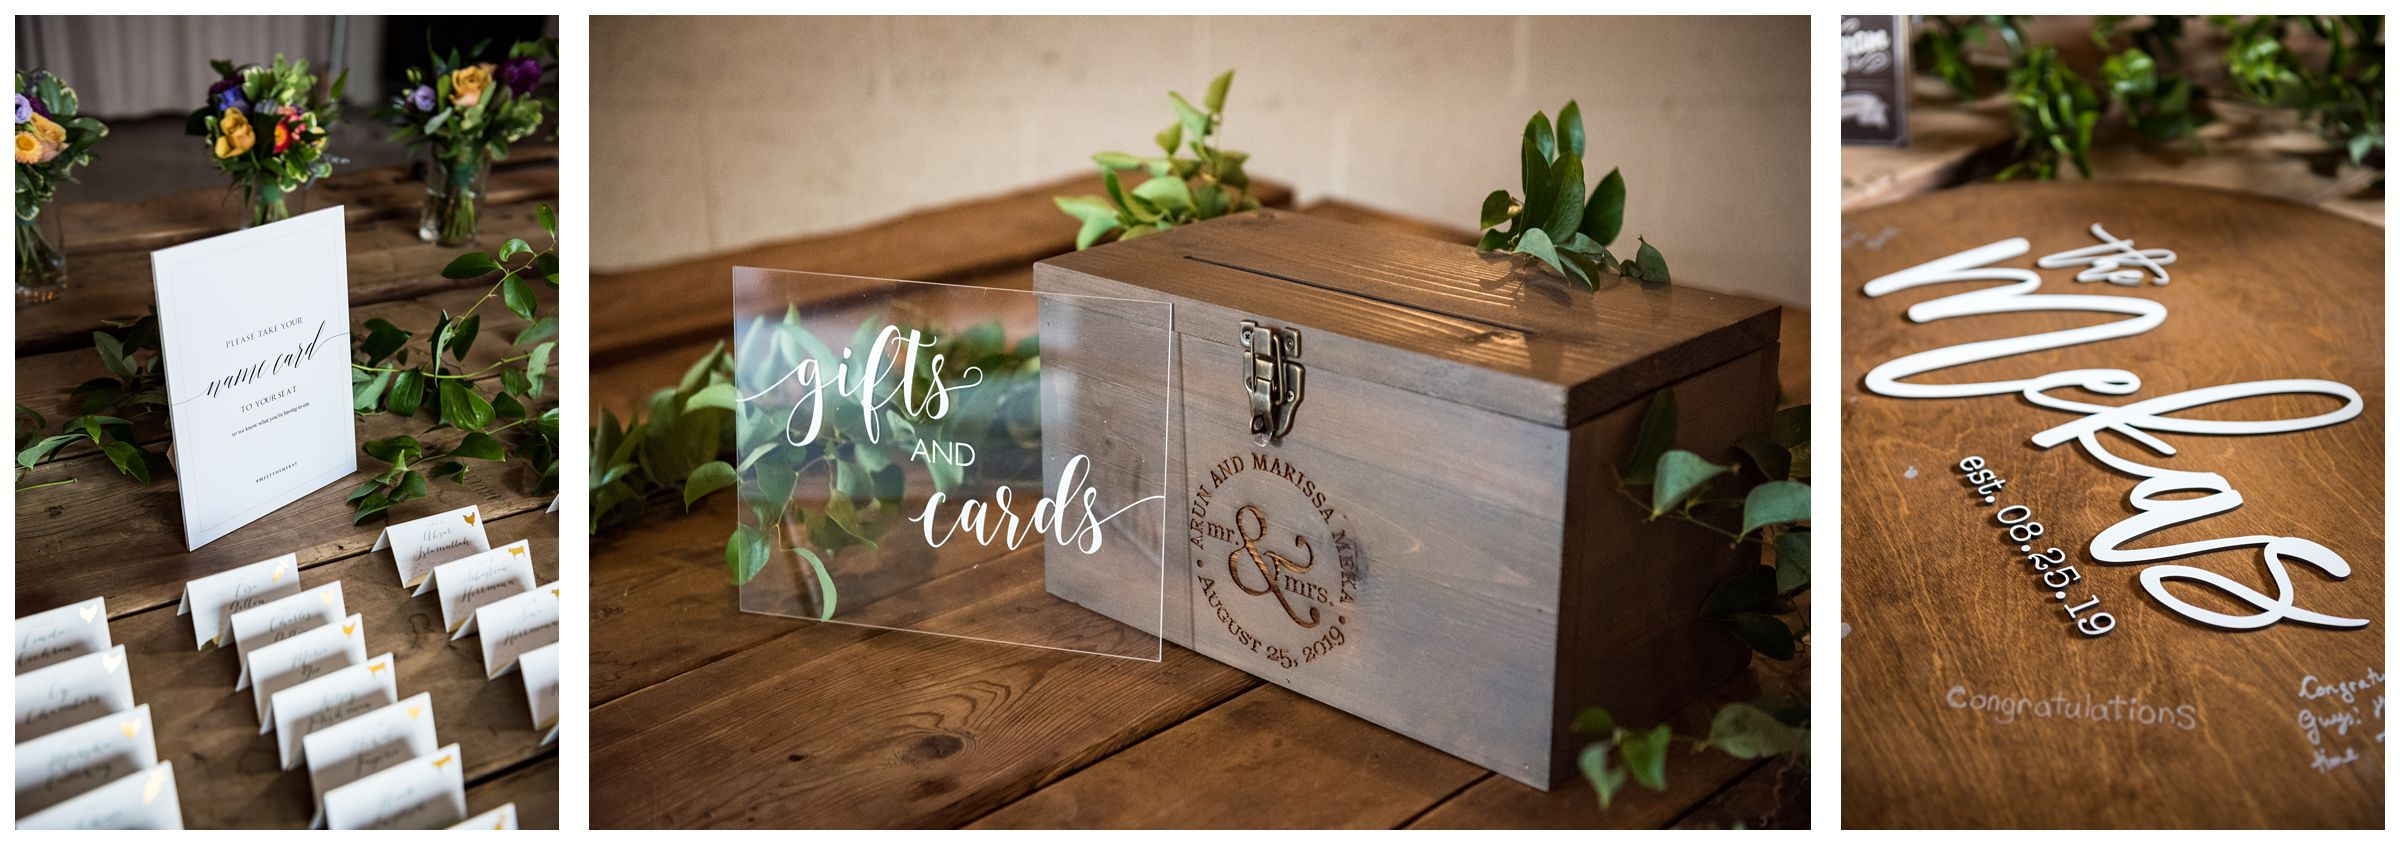 custom engraved wooden wedding card box, wooden guestbook sign, greenery and acrylic wedding signs